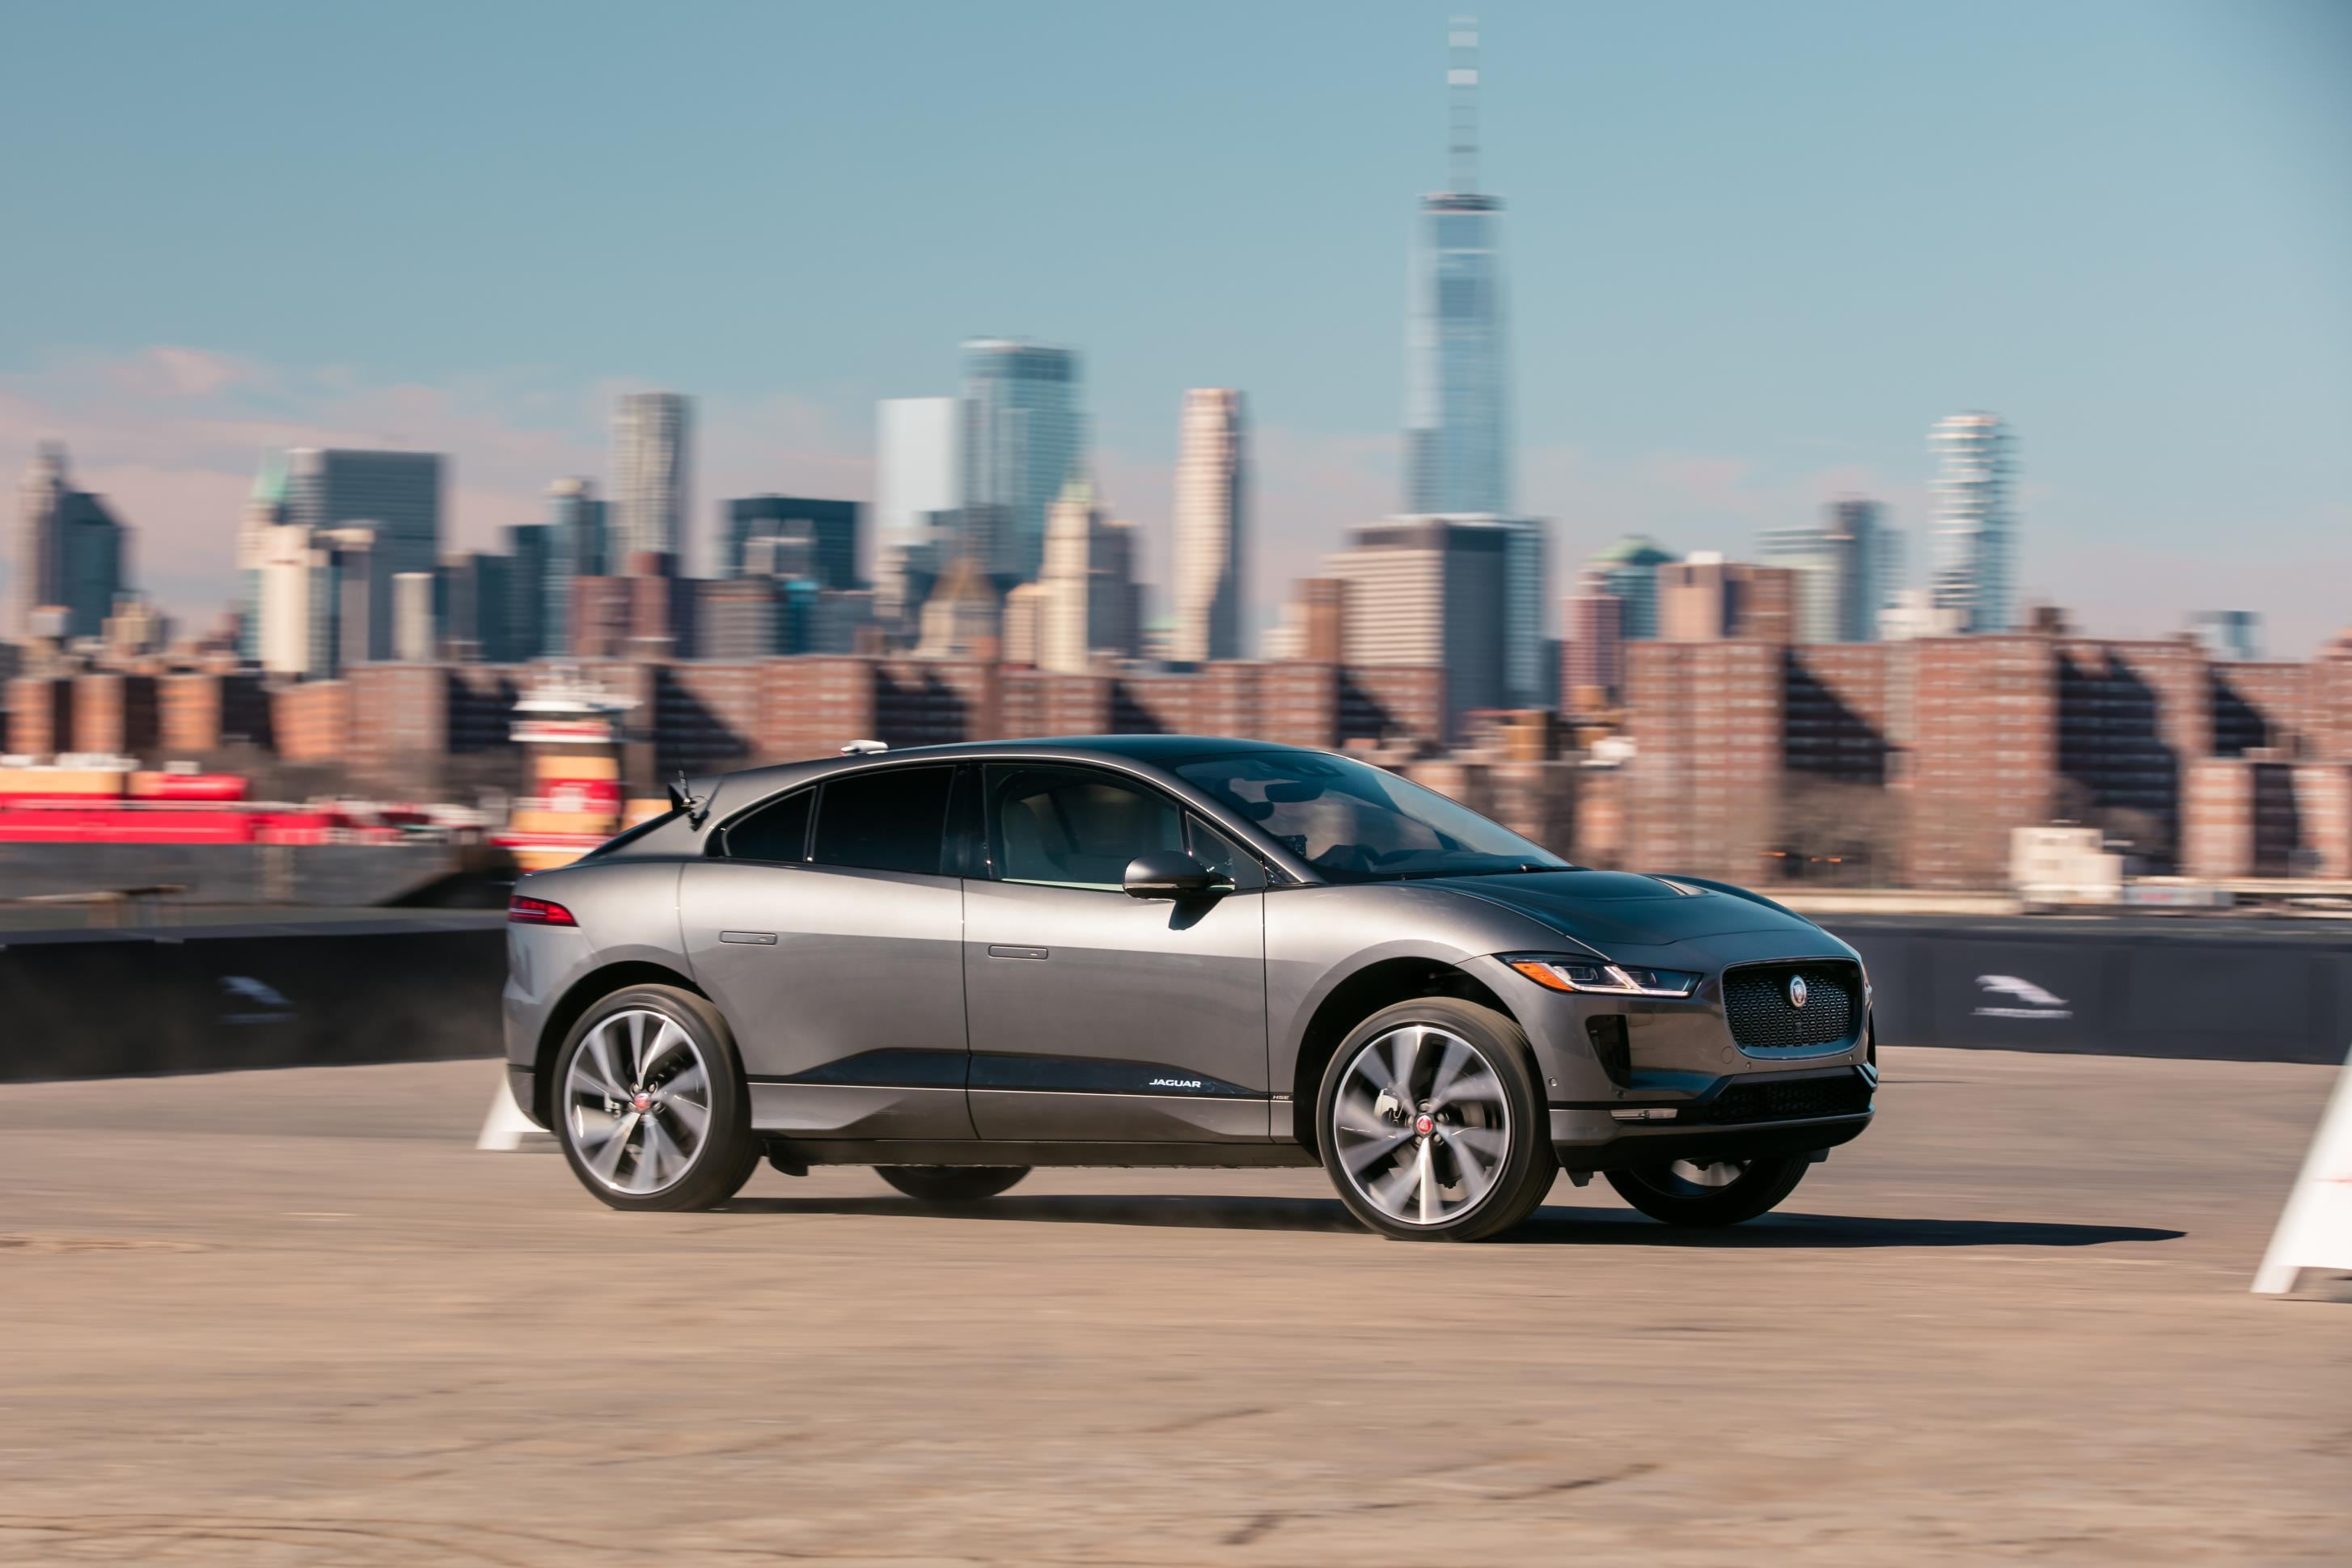 Will most of us soon be driving electric SUVs like the i-Pace concept?